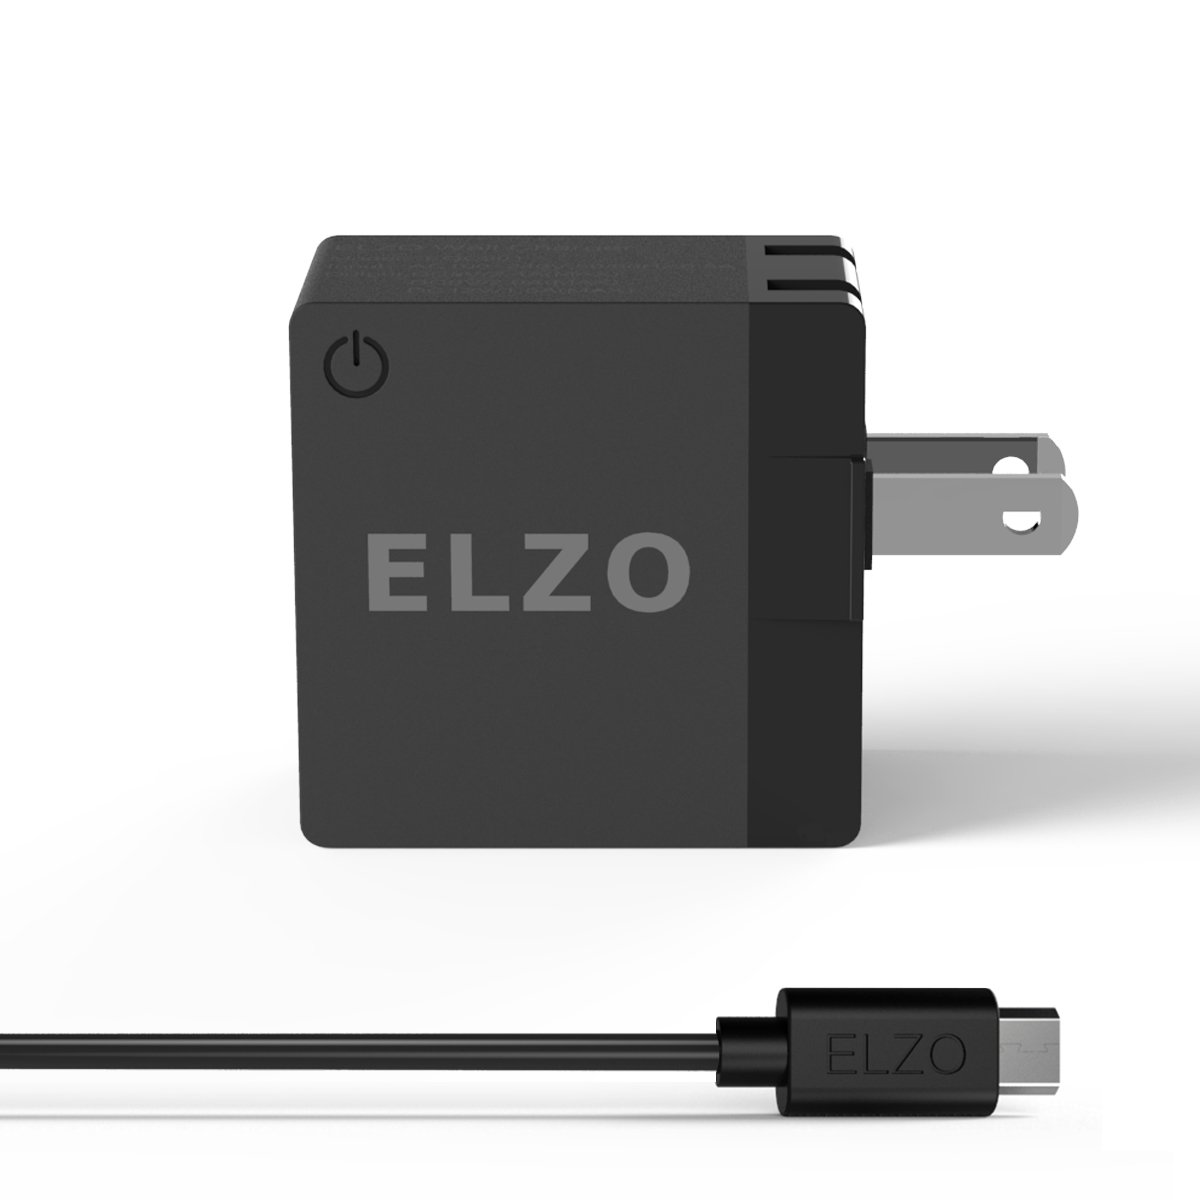 Elzo Quick Charge 2.0 18W USB Wall Charger Fast Charger With A 3.3ft Quick Charge Micro USB Cable For Samsung Galaxy/Note, LG Flex2/V10/G4, Google Nexus 6, Motorola Droid/X, Sony Xperia, HTC Desire Eye, ASUS ZenFone2, Android Devices 31WC-QC2-1BE